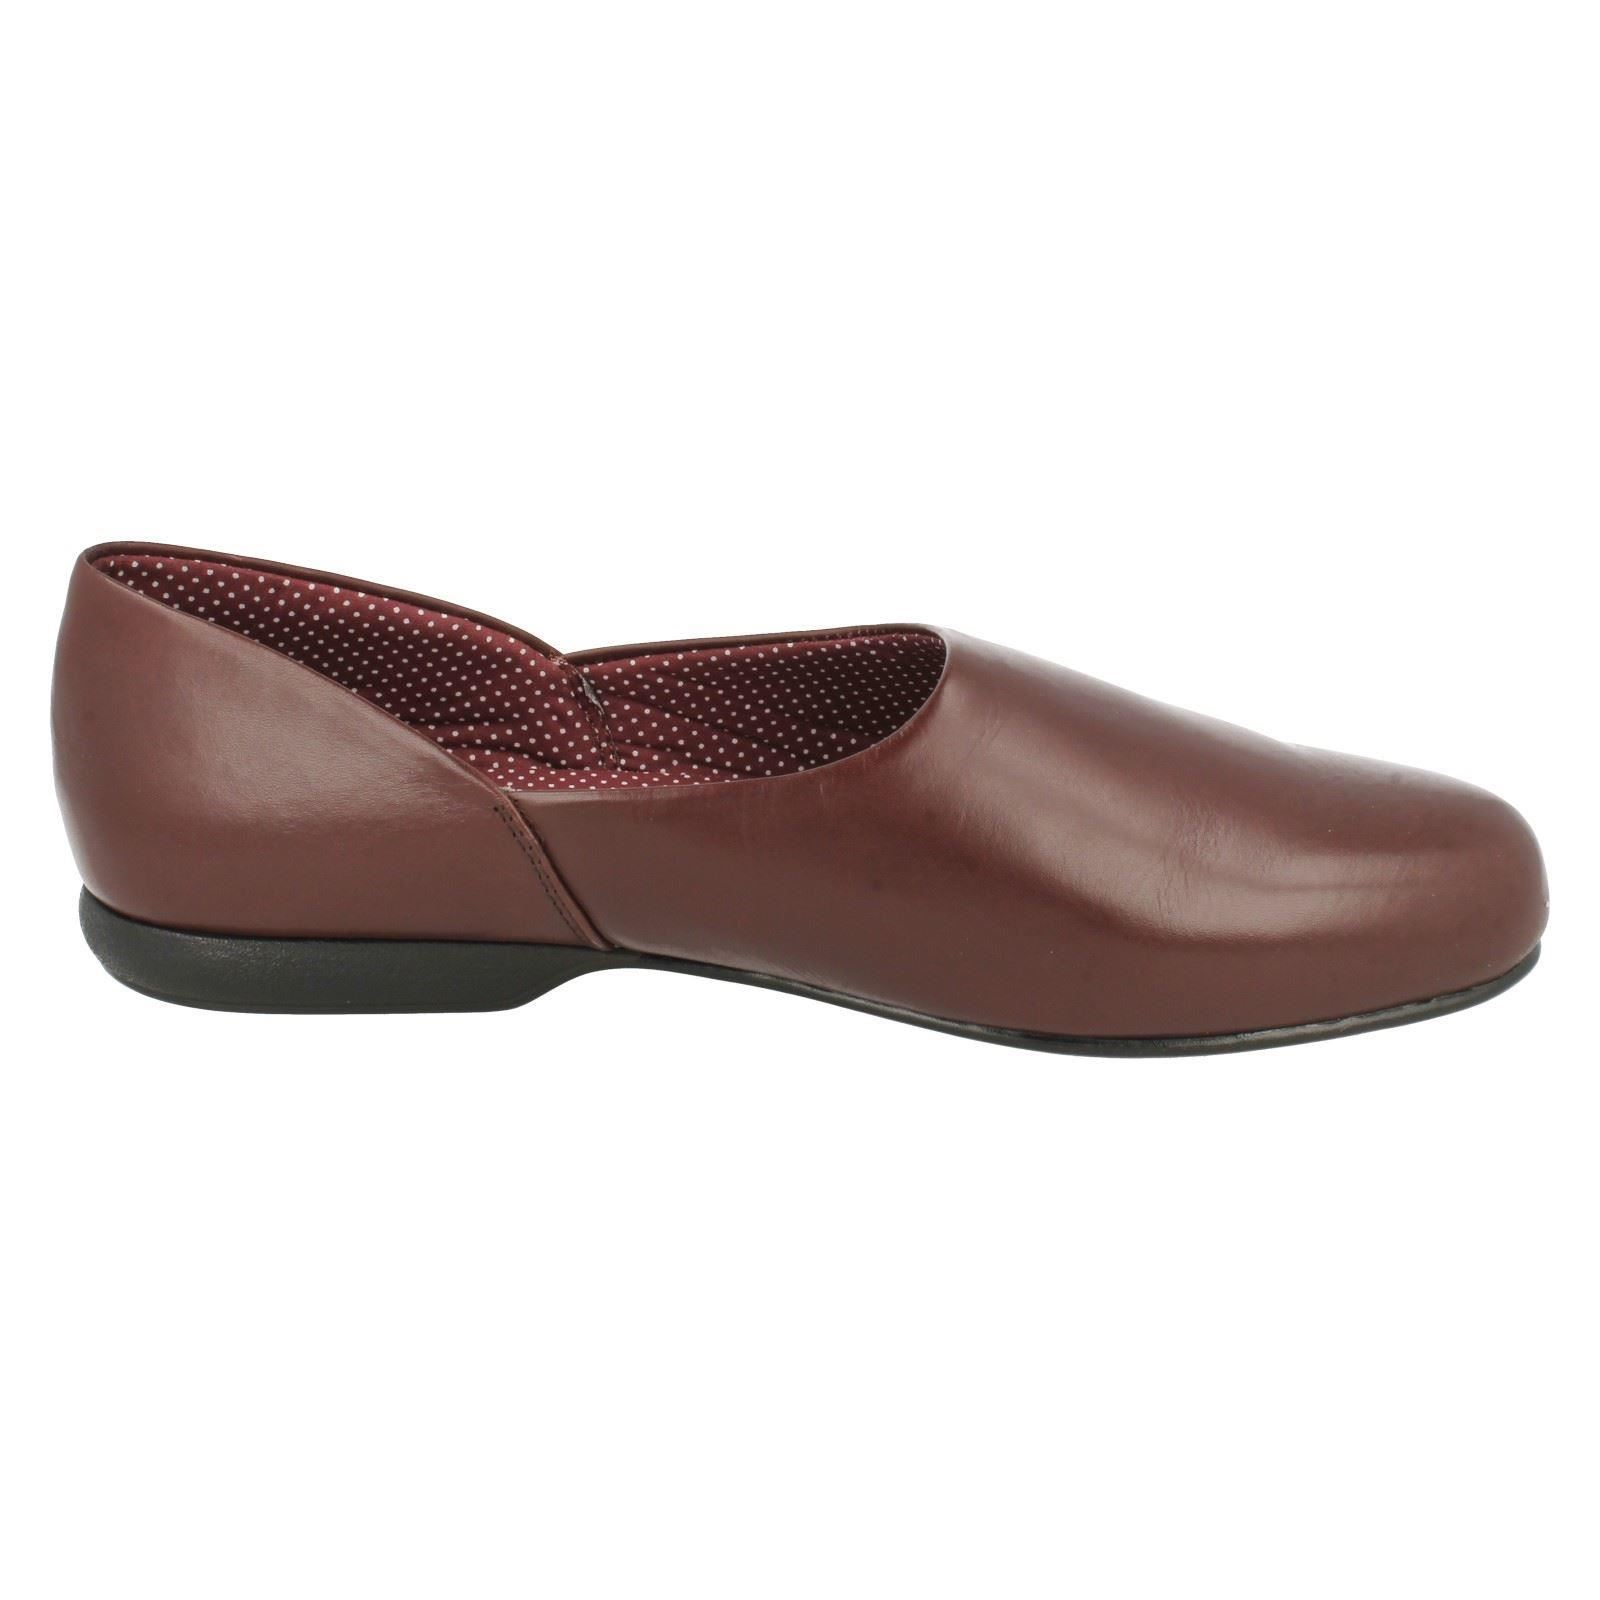 Mens Clarks Smart Everyday House Slippers *Harston Lounge*